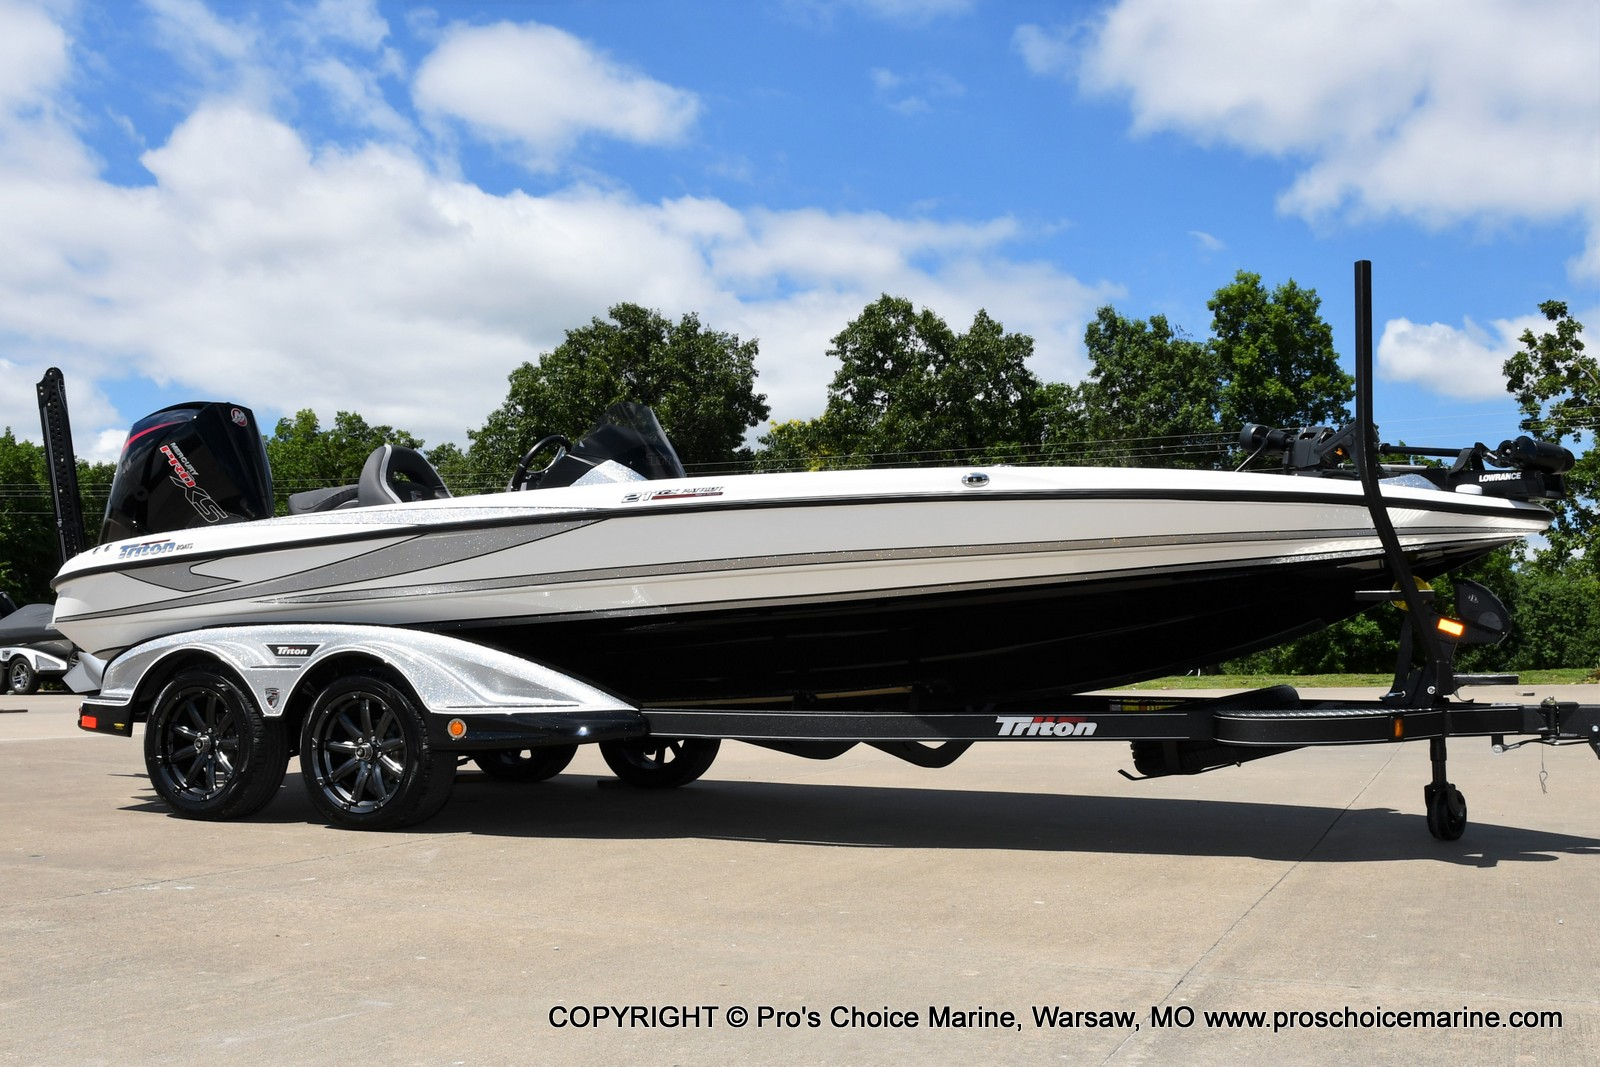 2021 Triton boat for sale, model of the boat is 21 TRX Patriot & Image # 13 of 50